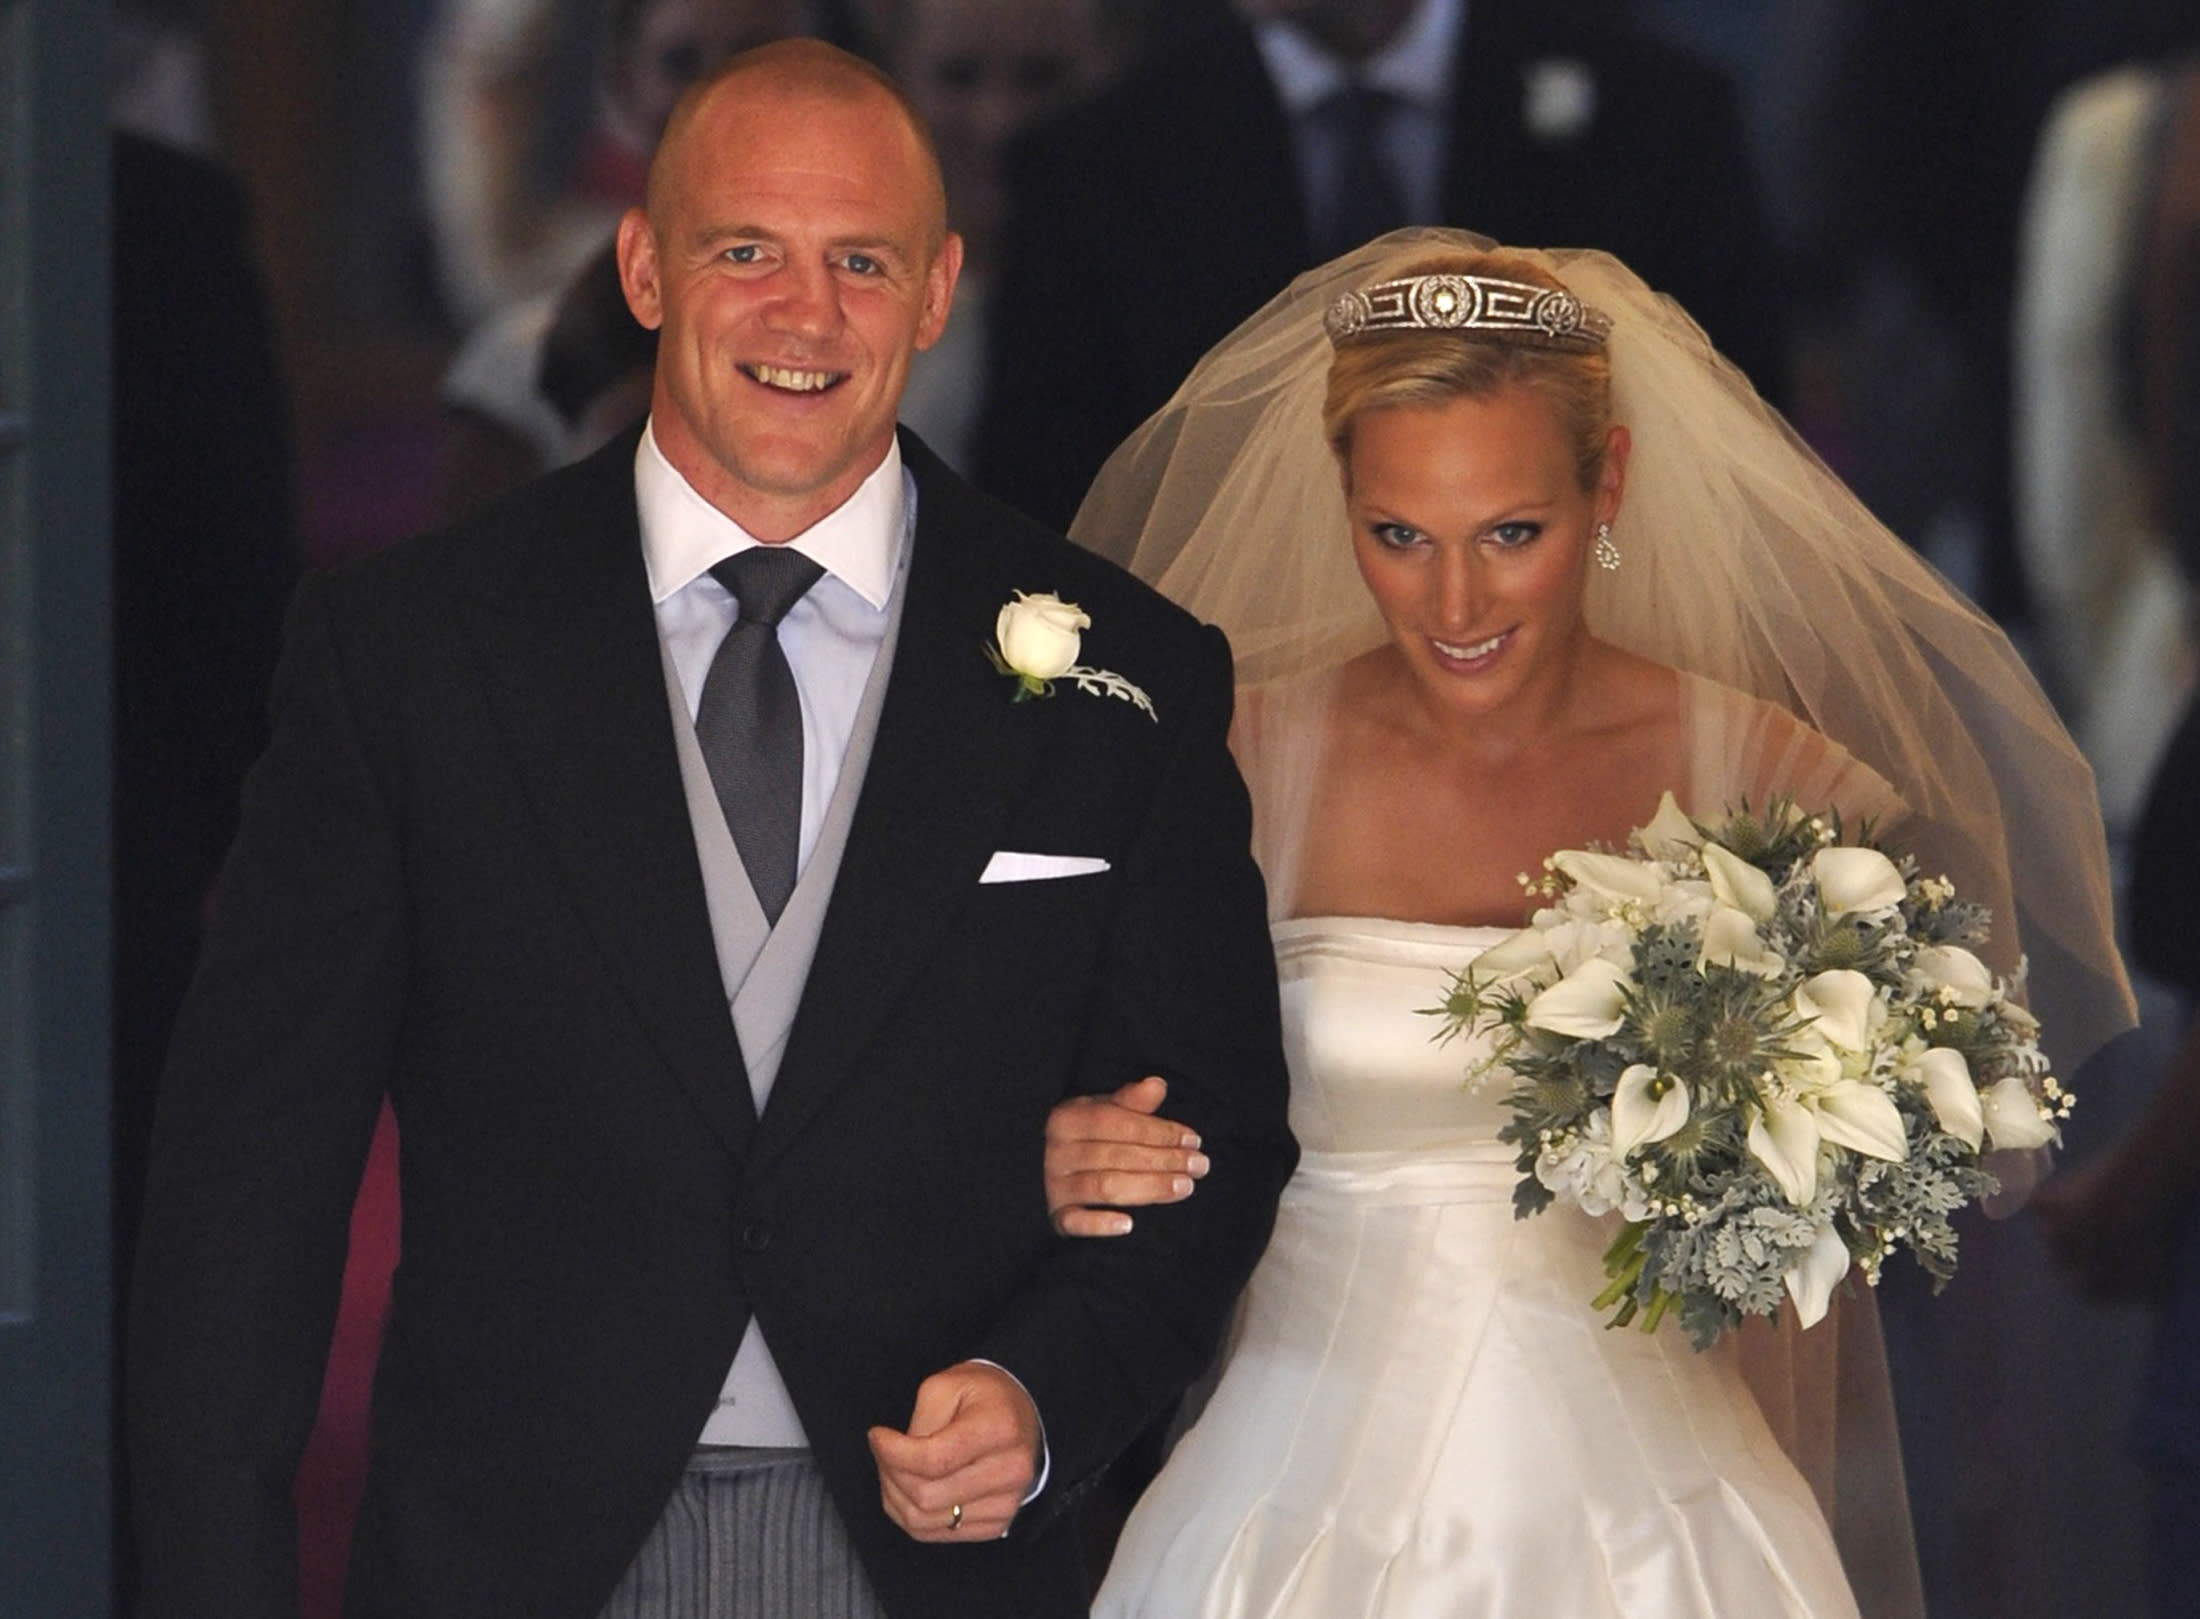 Britain's Zara Phillips, the eldest granddaughter of Queen Elizabeth, and her husband England rugby captain Mike Tindall, leave the church after their marriage at Canongate Kirk in Edinburgh, Scotland, July 30, 2011. REUTERS/Dylan Martinez (BRITAIN  - Tags: ROYALS ENTERTAINMENT SOCIETY)